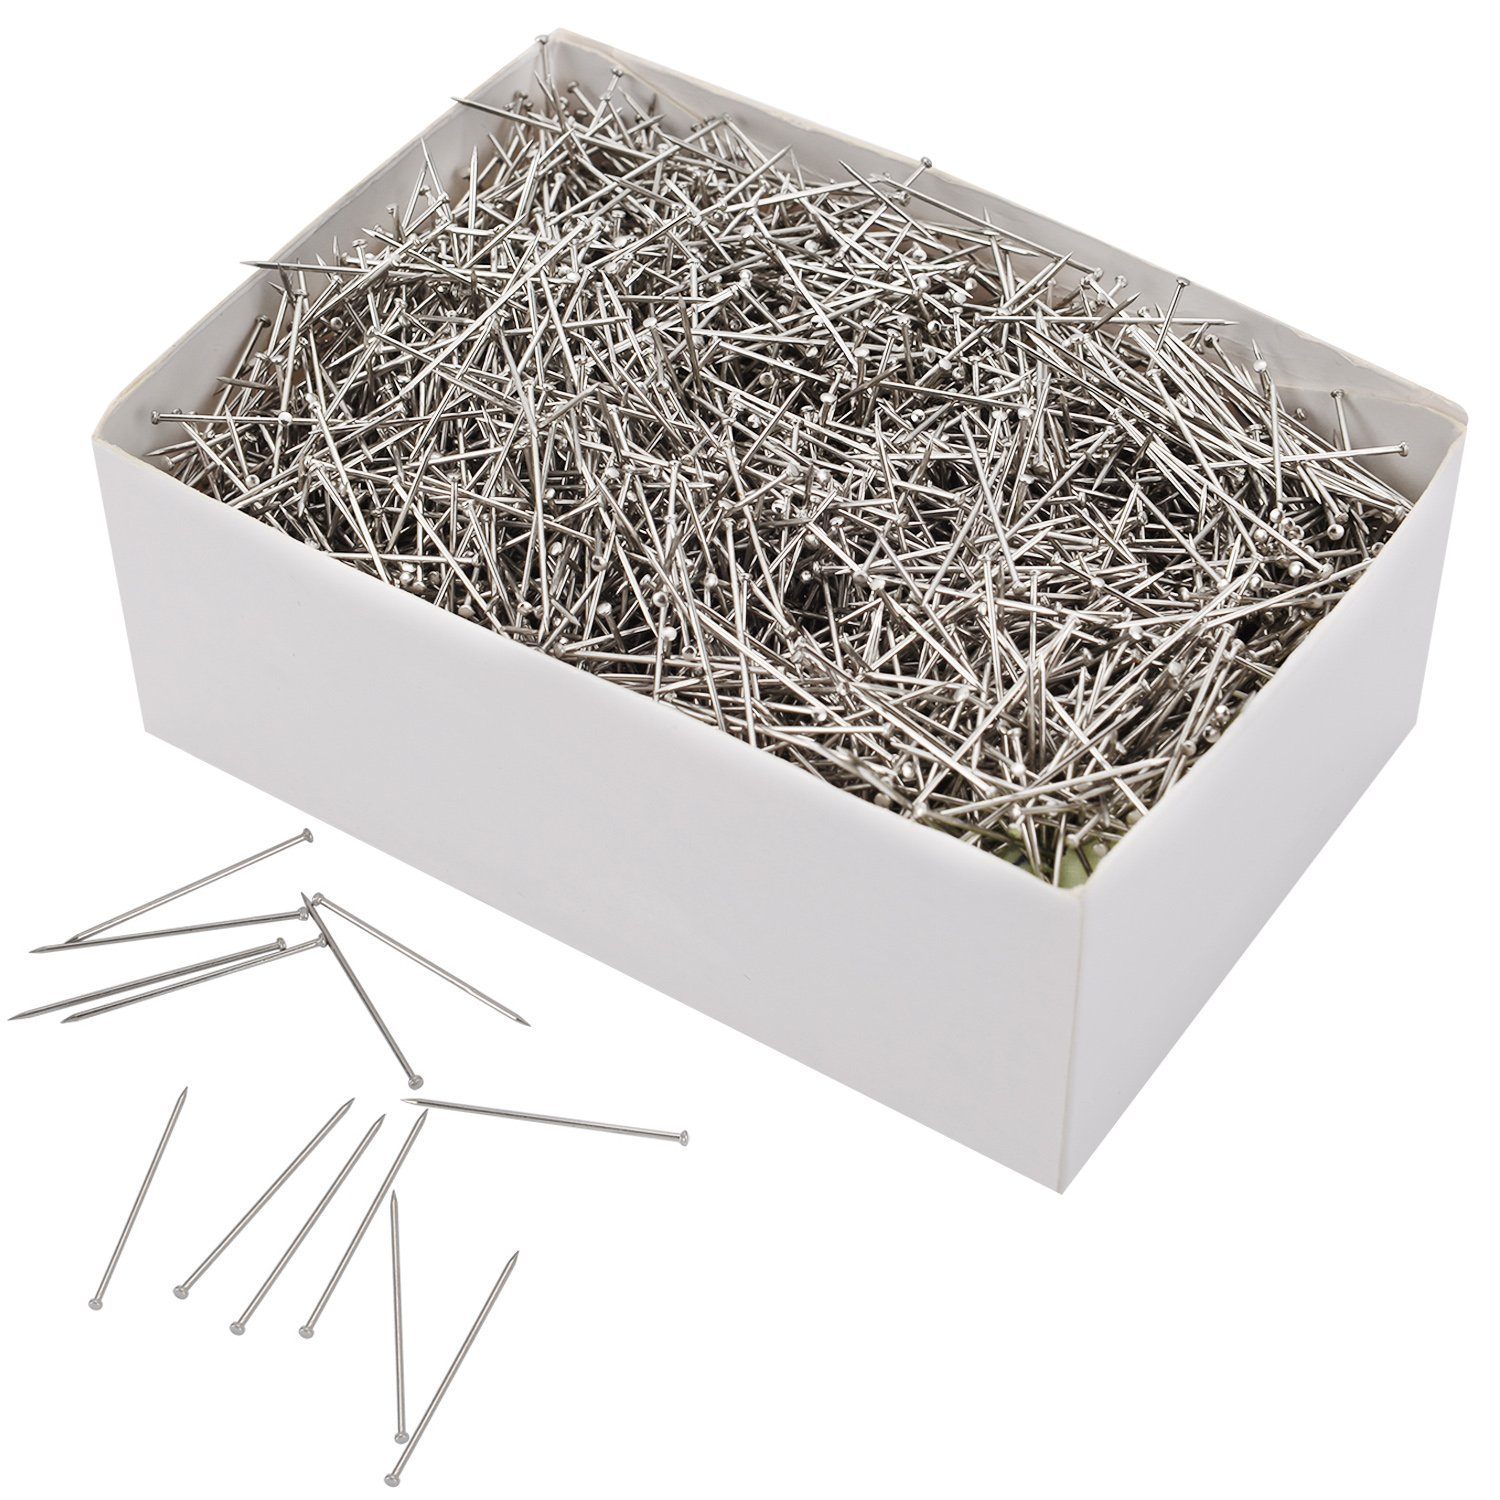 3500 Pieces Head Pins Fine Satin Pin Dressmaker Pins for Jewelry Making, Sewing and Craft, Nickel Plated, 26 mm Outus